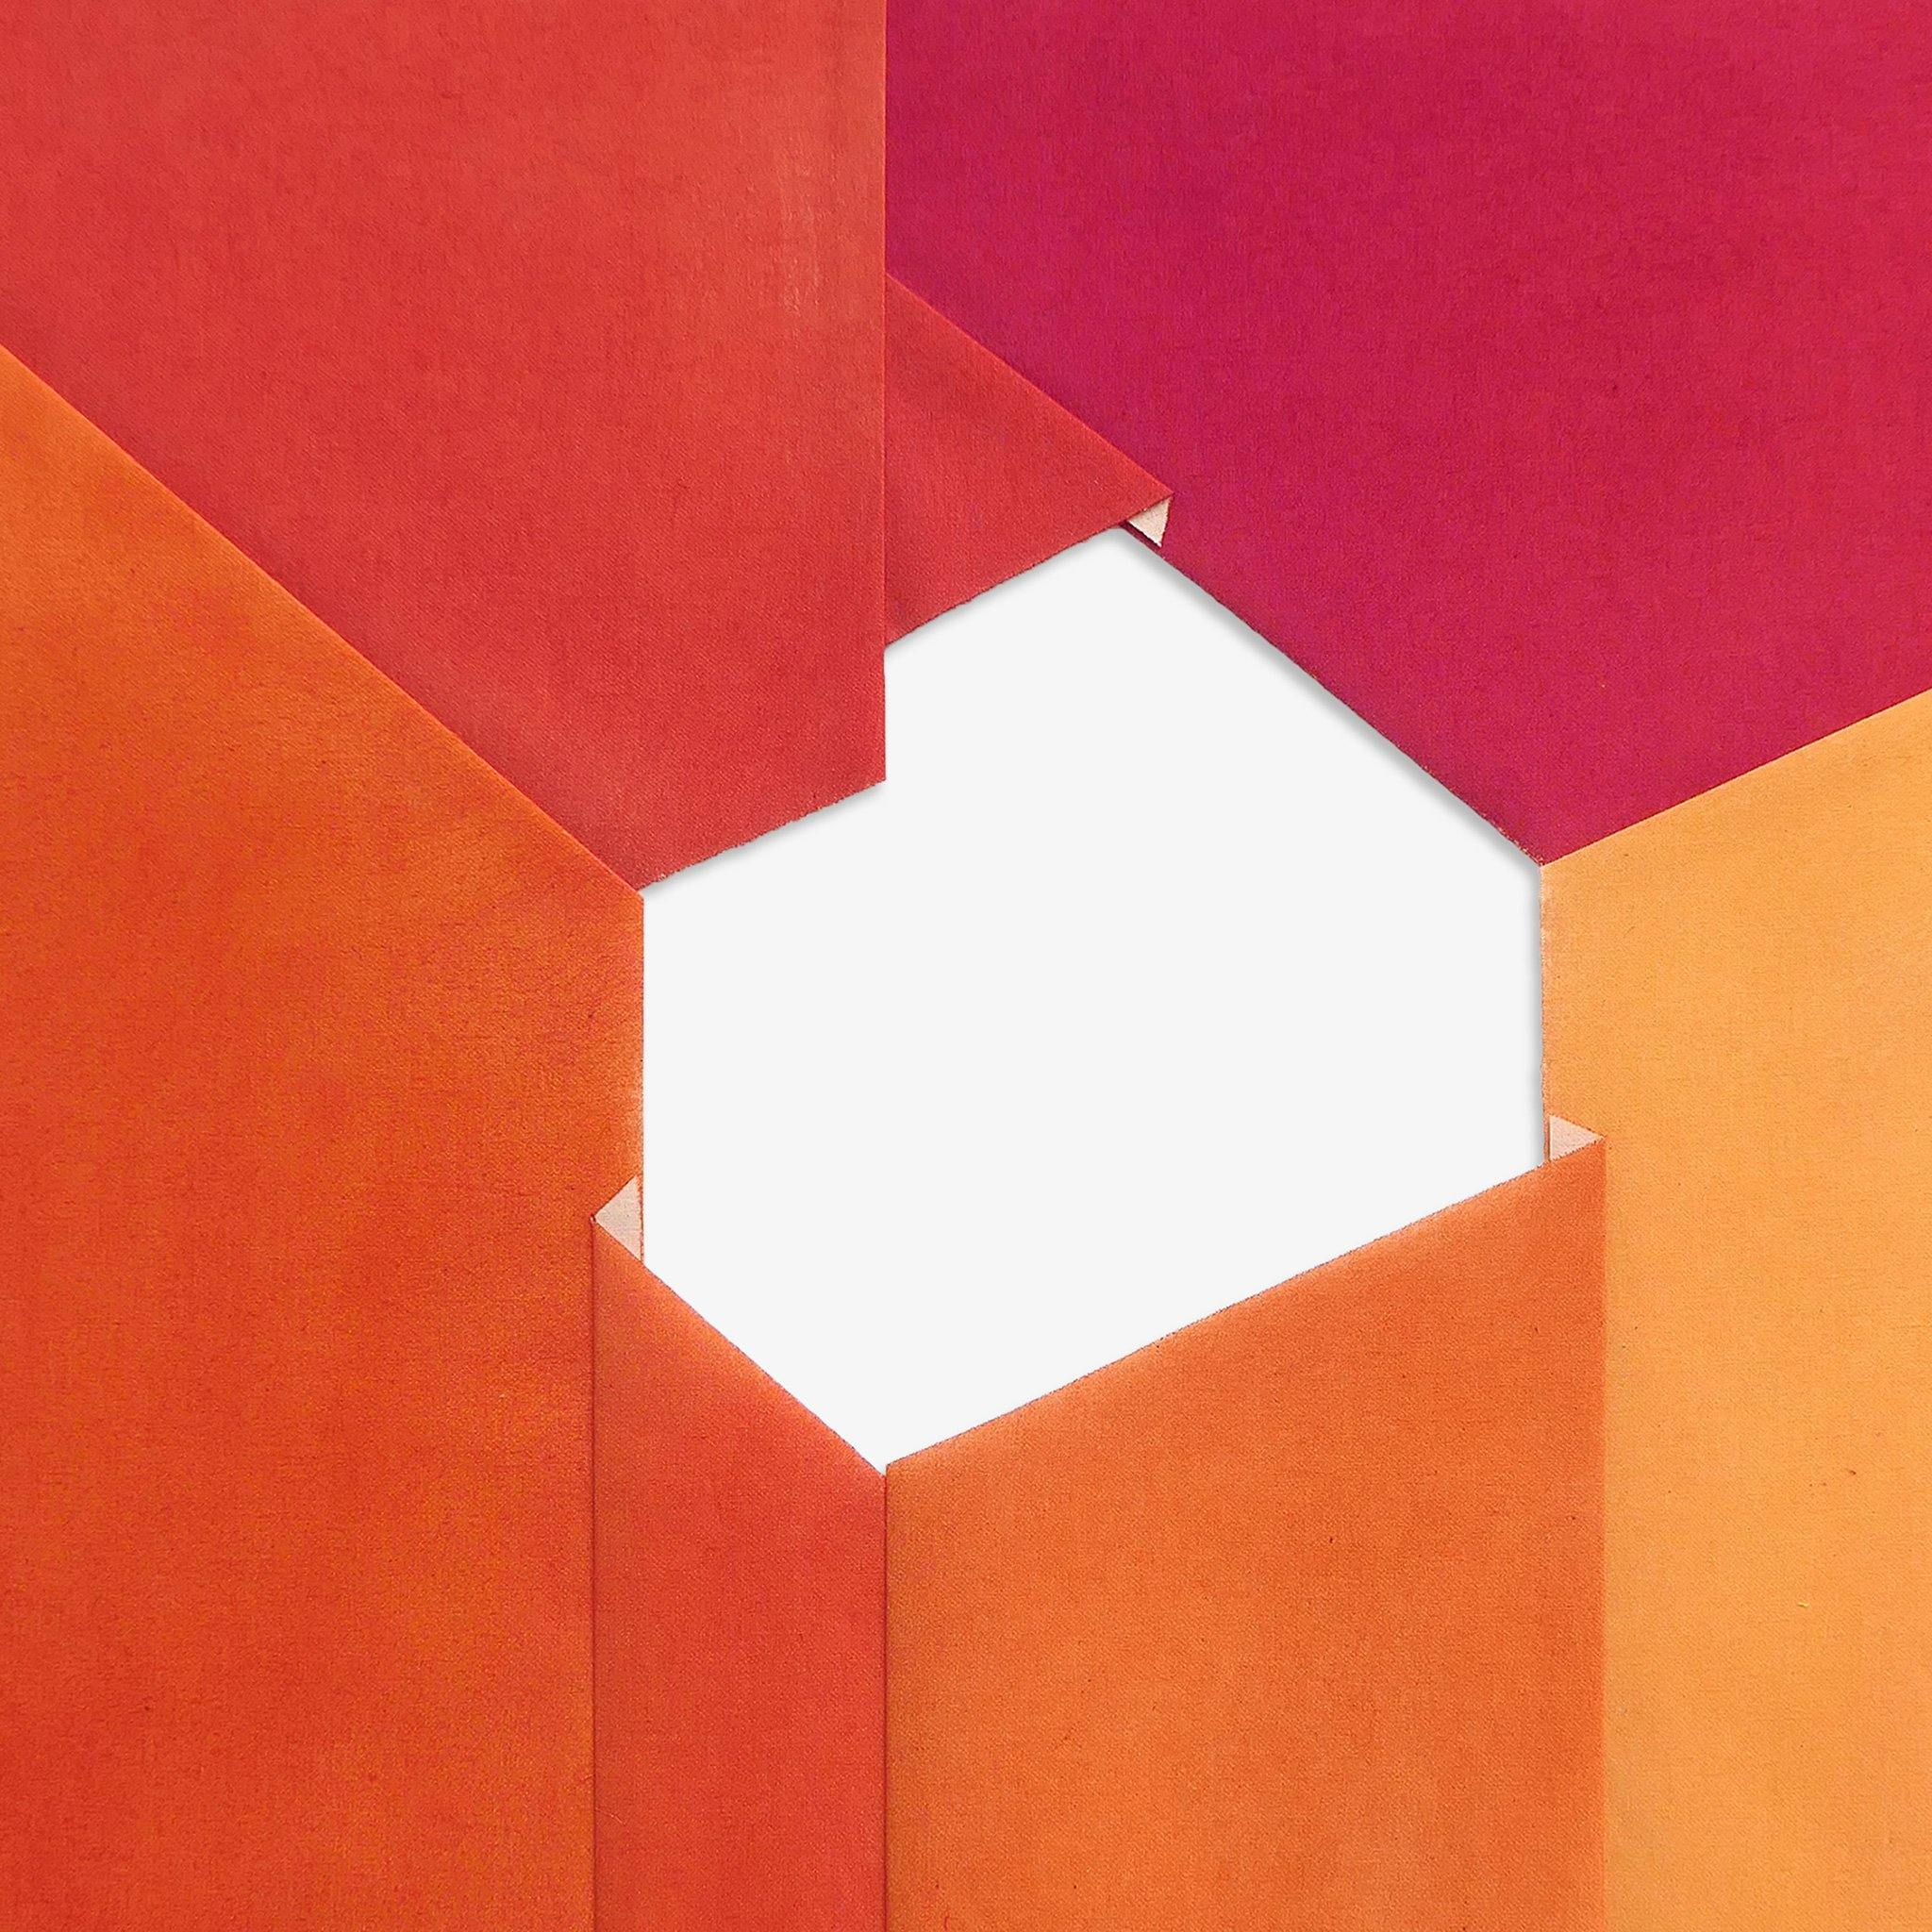 Composition Verdad #5 (Orange-Crimson)